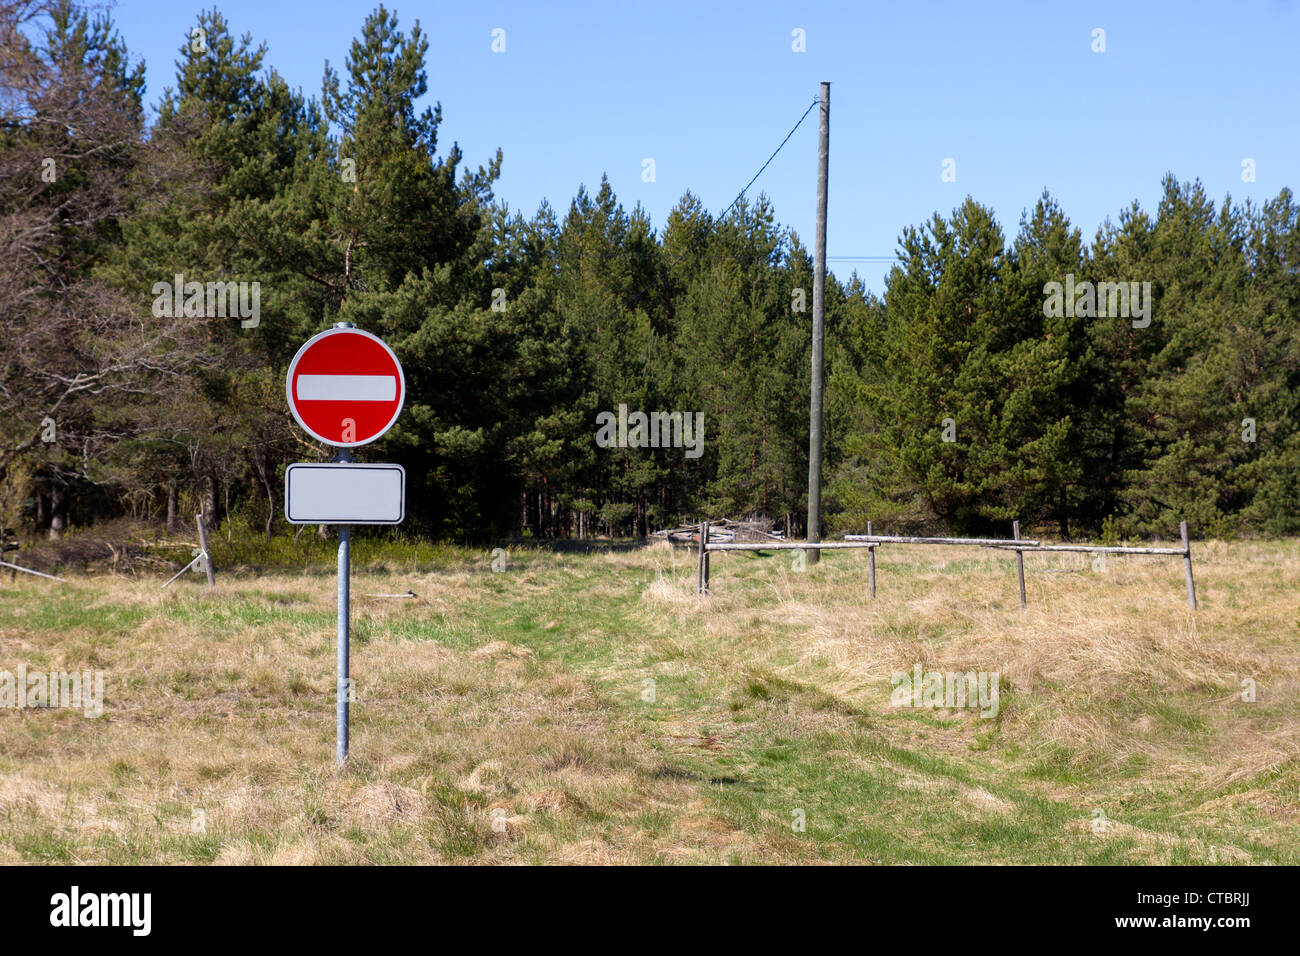 No Entry sign in forest, no road - Stock Image